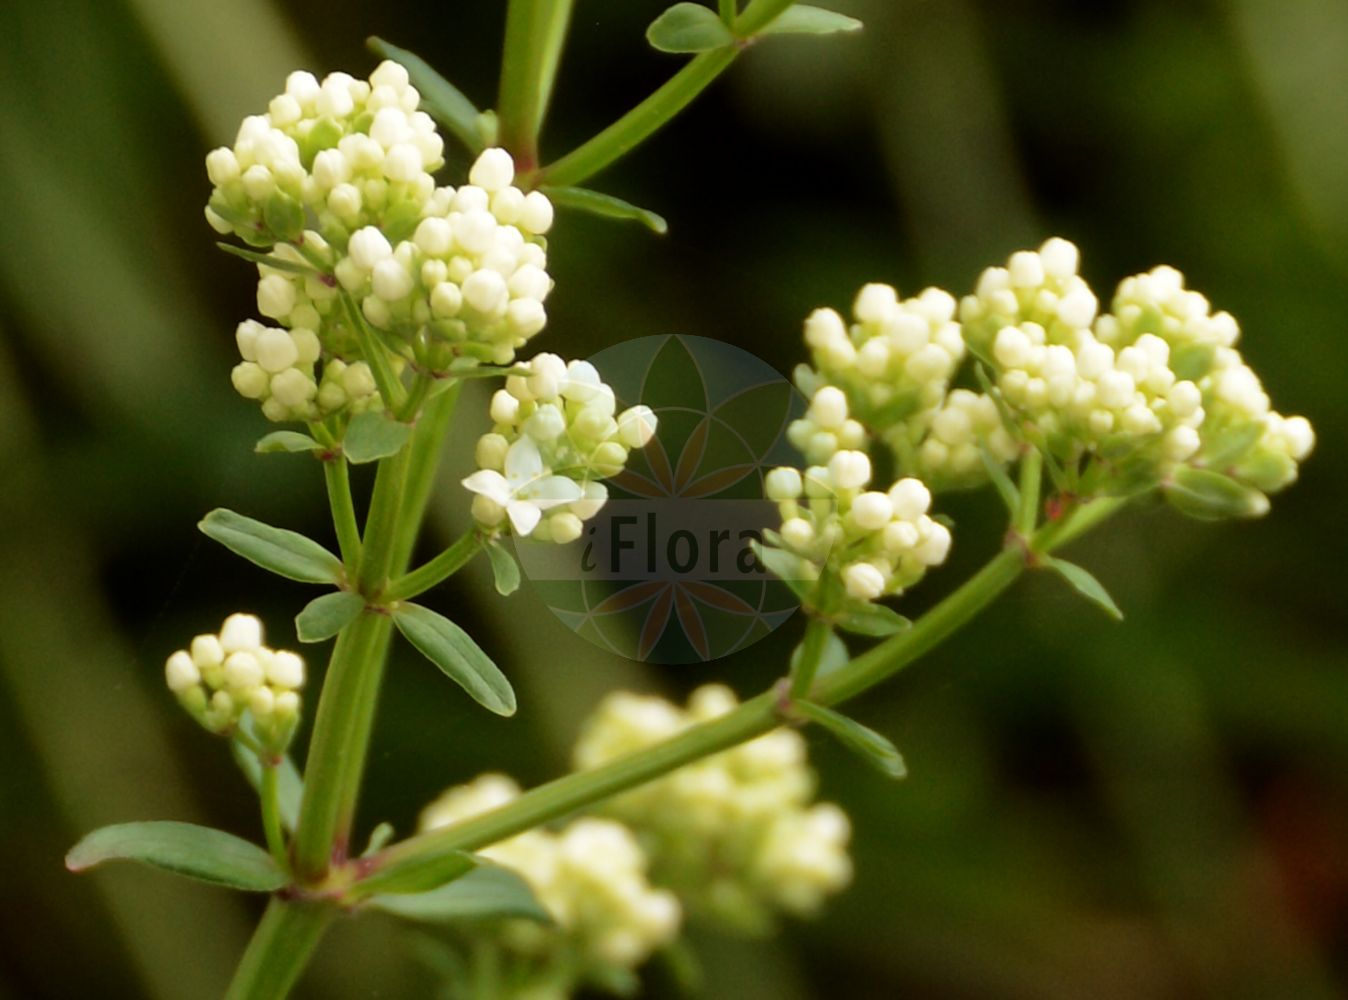 Foto von Galium rubioides. Das Foto wurde in Jardin des Plantes, Paris, Frankreich aufgenommen. ---- Photo of Galium rubioides.The picture was taken in Jardin des Plantes, Paris, France.(Galium rubioides,Galium physocarpum,,Galium,Labkraut,Bedstraw,Rubiaceae,Roetegewaechse;Kaffeegewaechse;Krappgewaechse;Labkrautgewaechse,Bedstraw family)